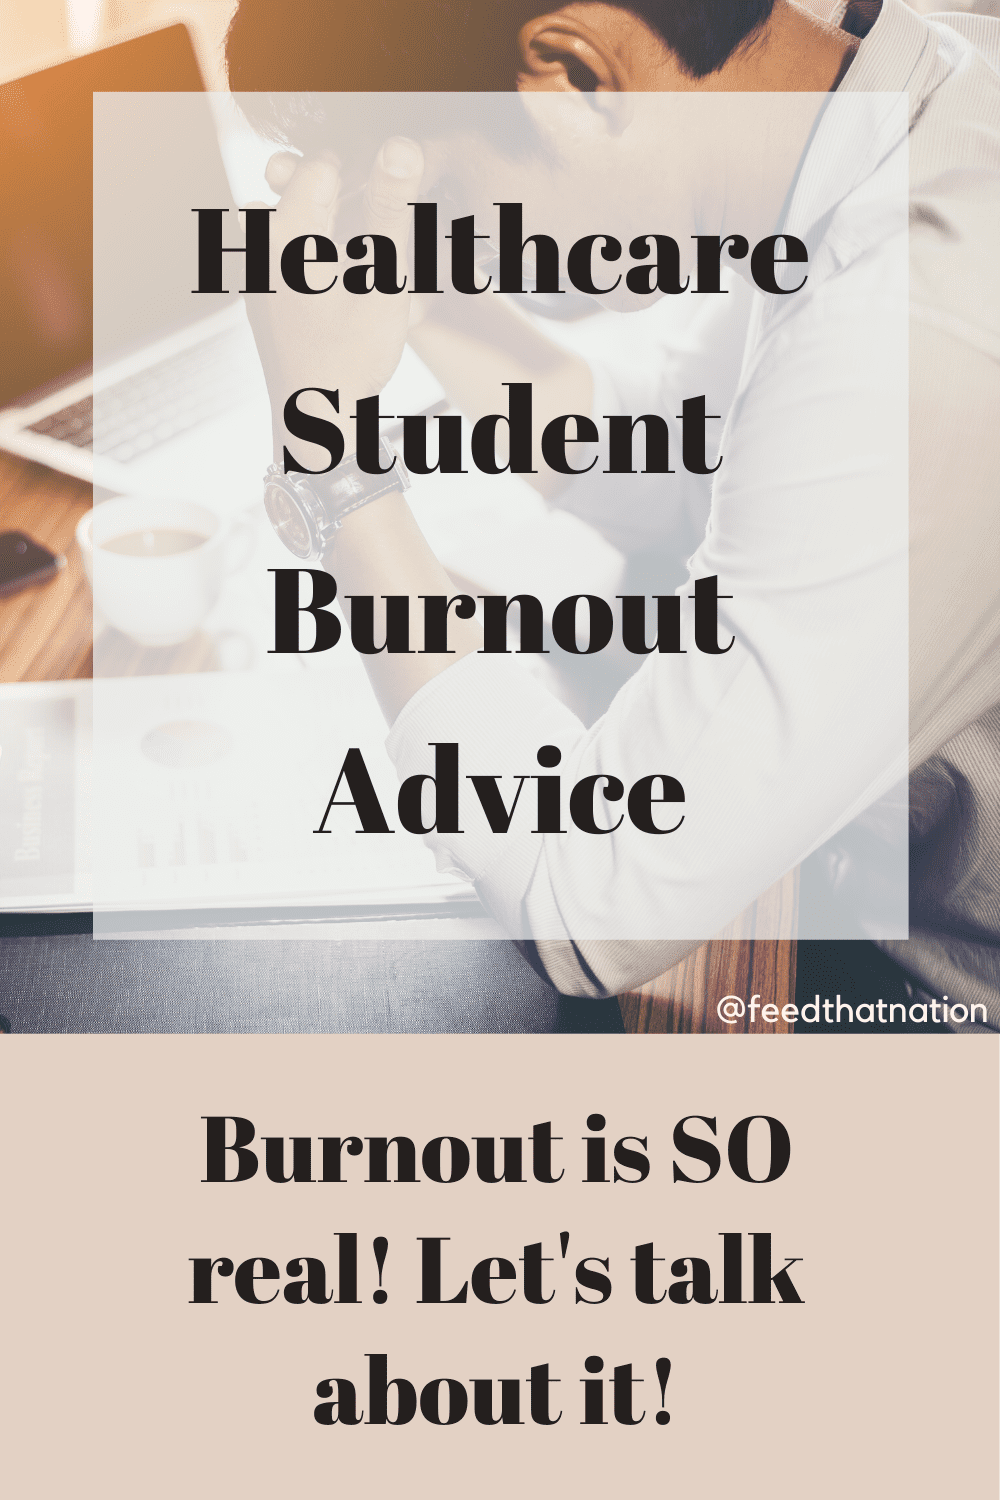 PODCAST: Health-Care Student Burnout: Let's Talk About It!